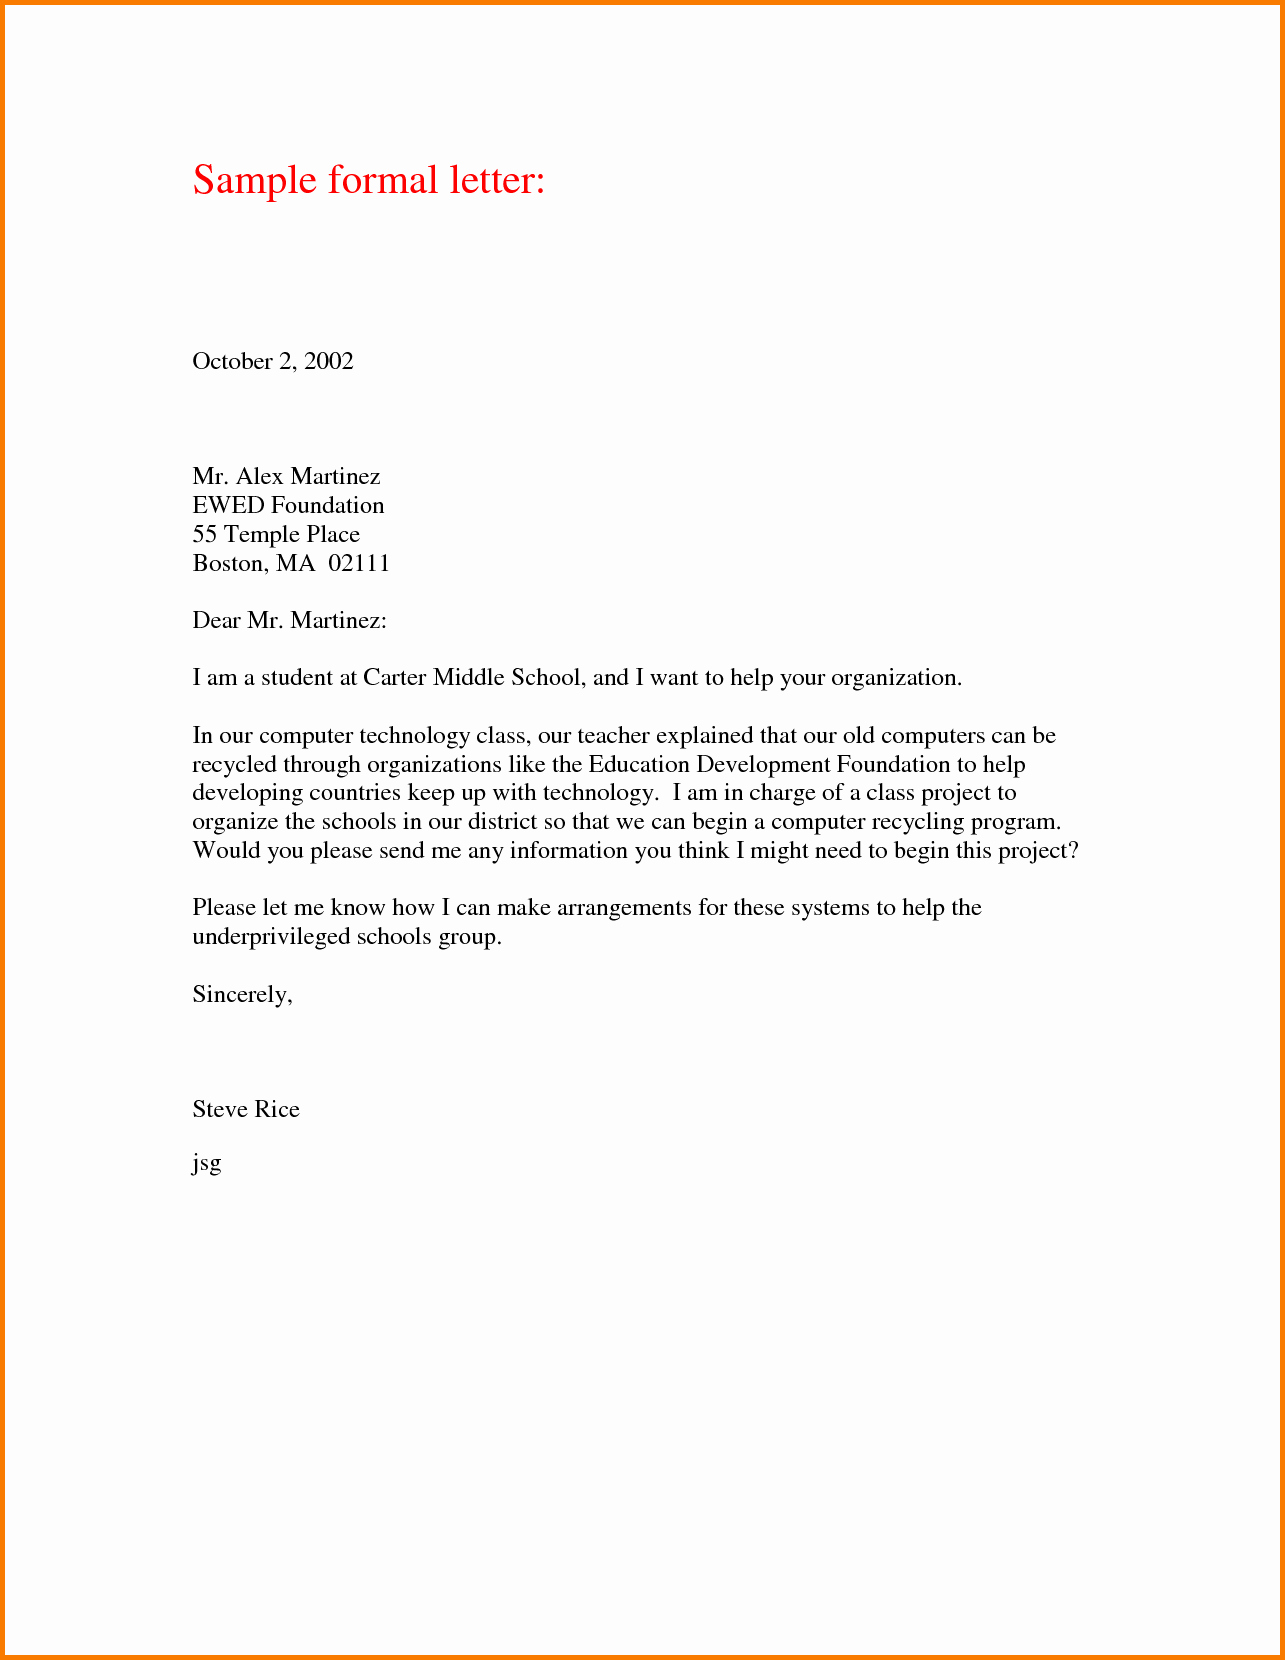 Sample Of formal Business Letter New 6 formal Business Letter Samples